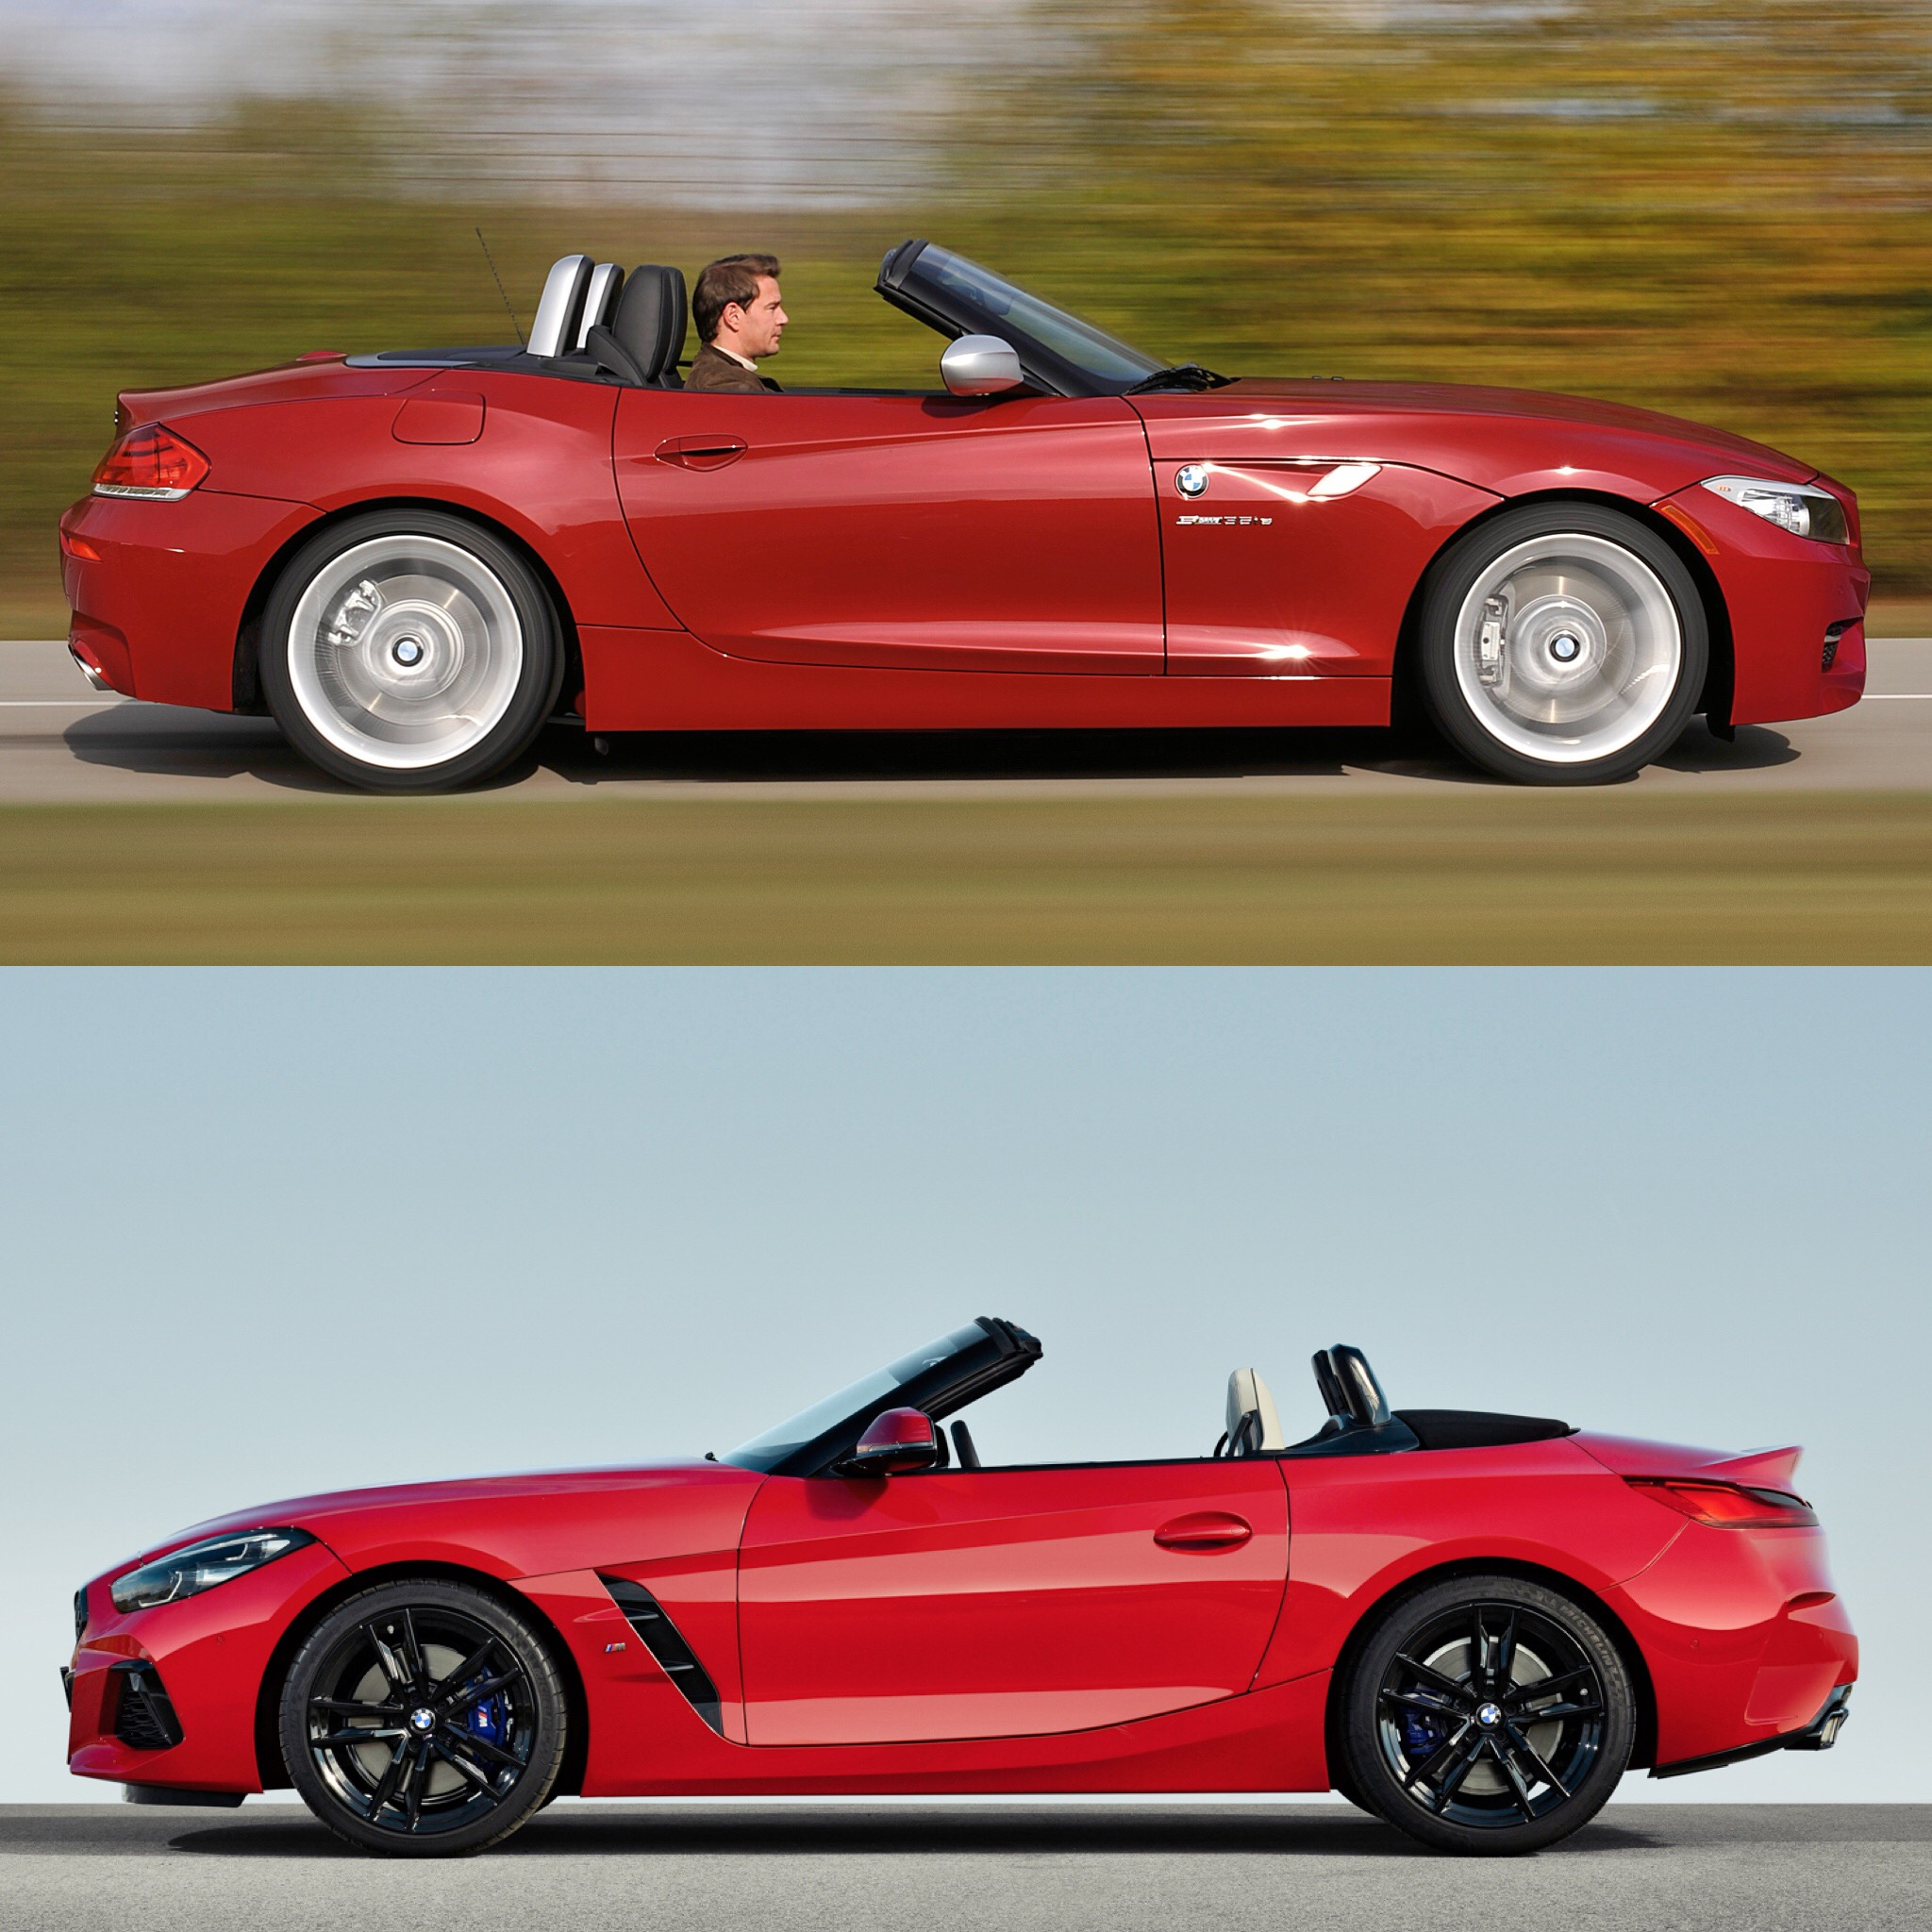 Bmw Z4 Convertible: Photo Comparison: G29 BMW Z4 Vs E89 BMW Z4